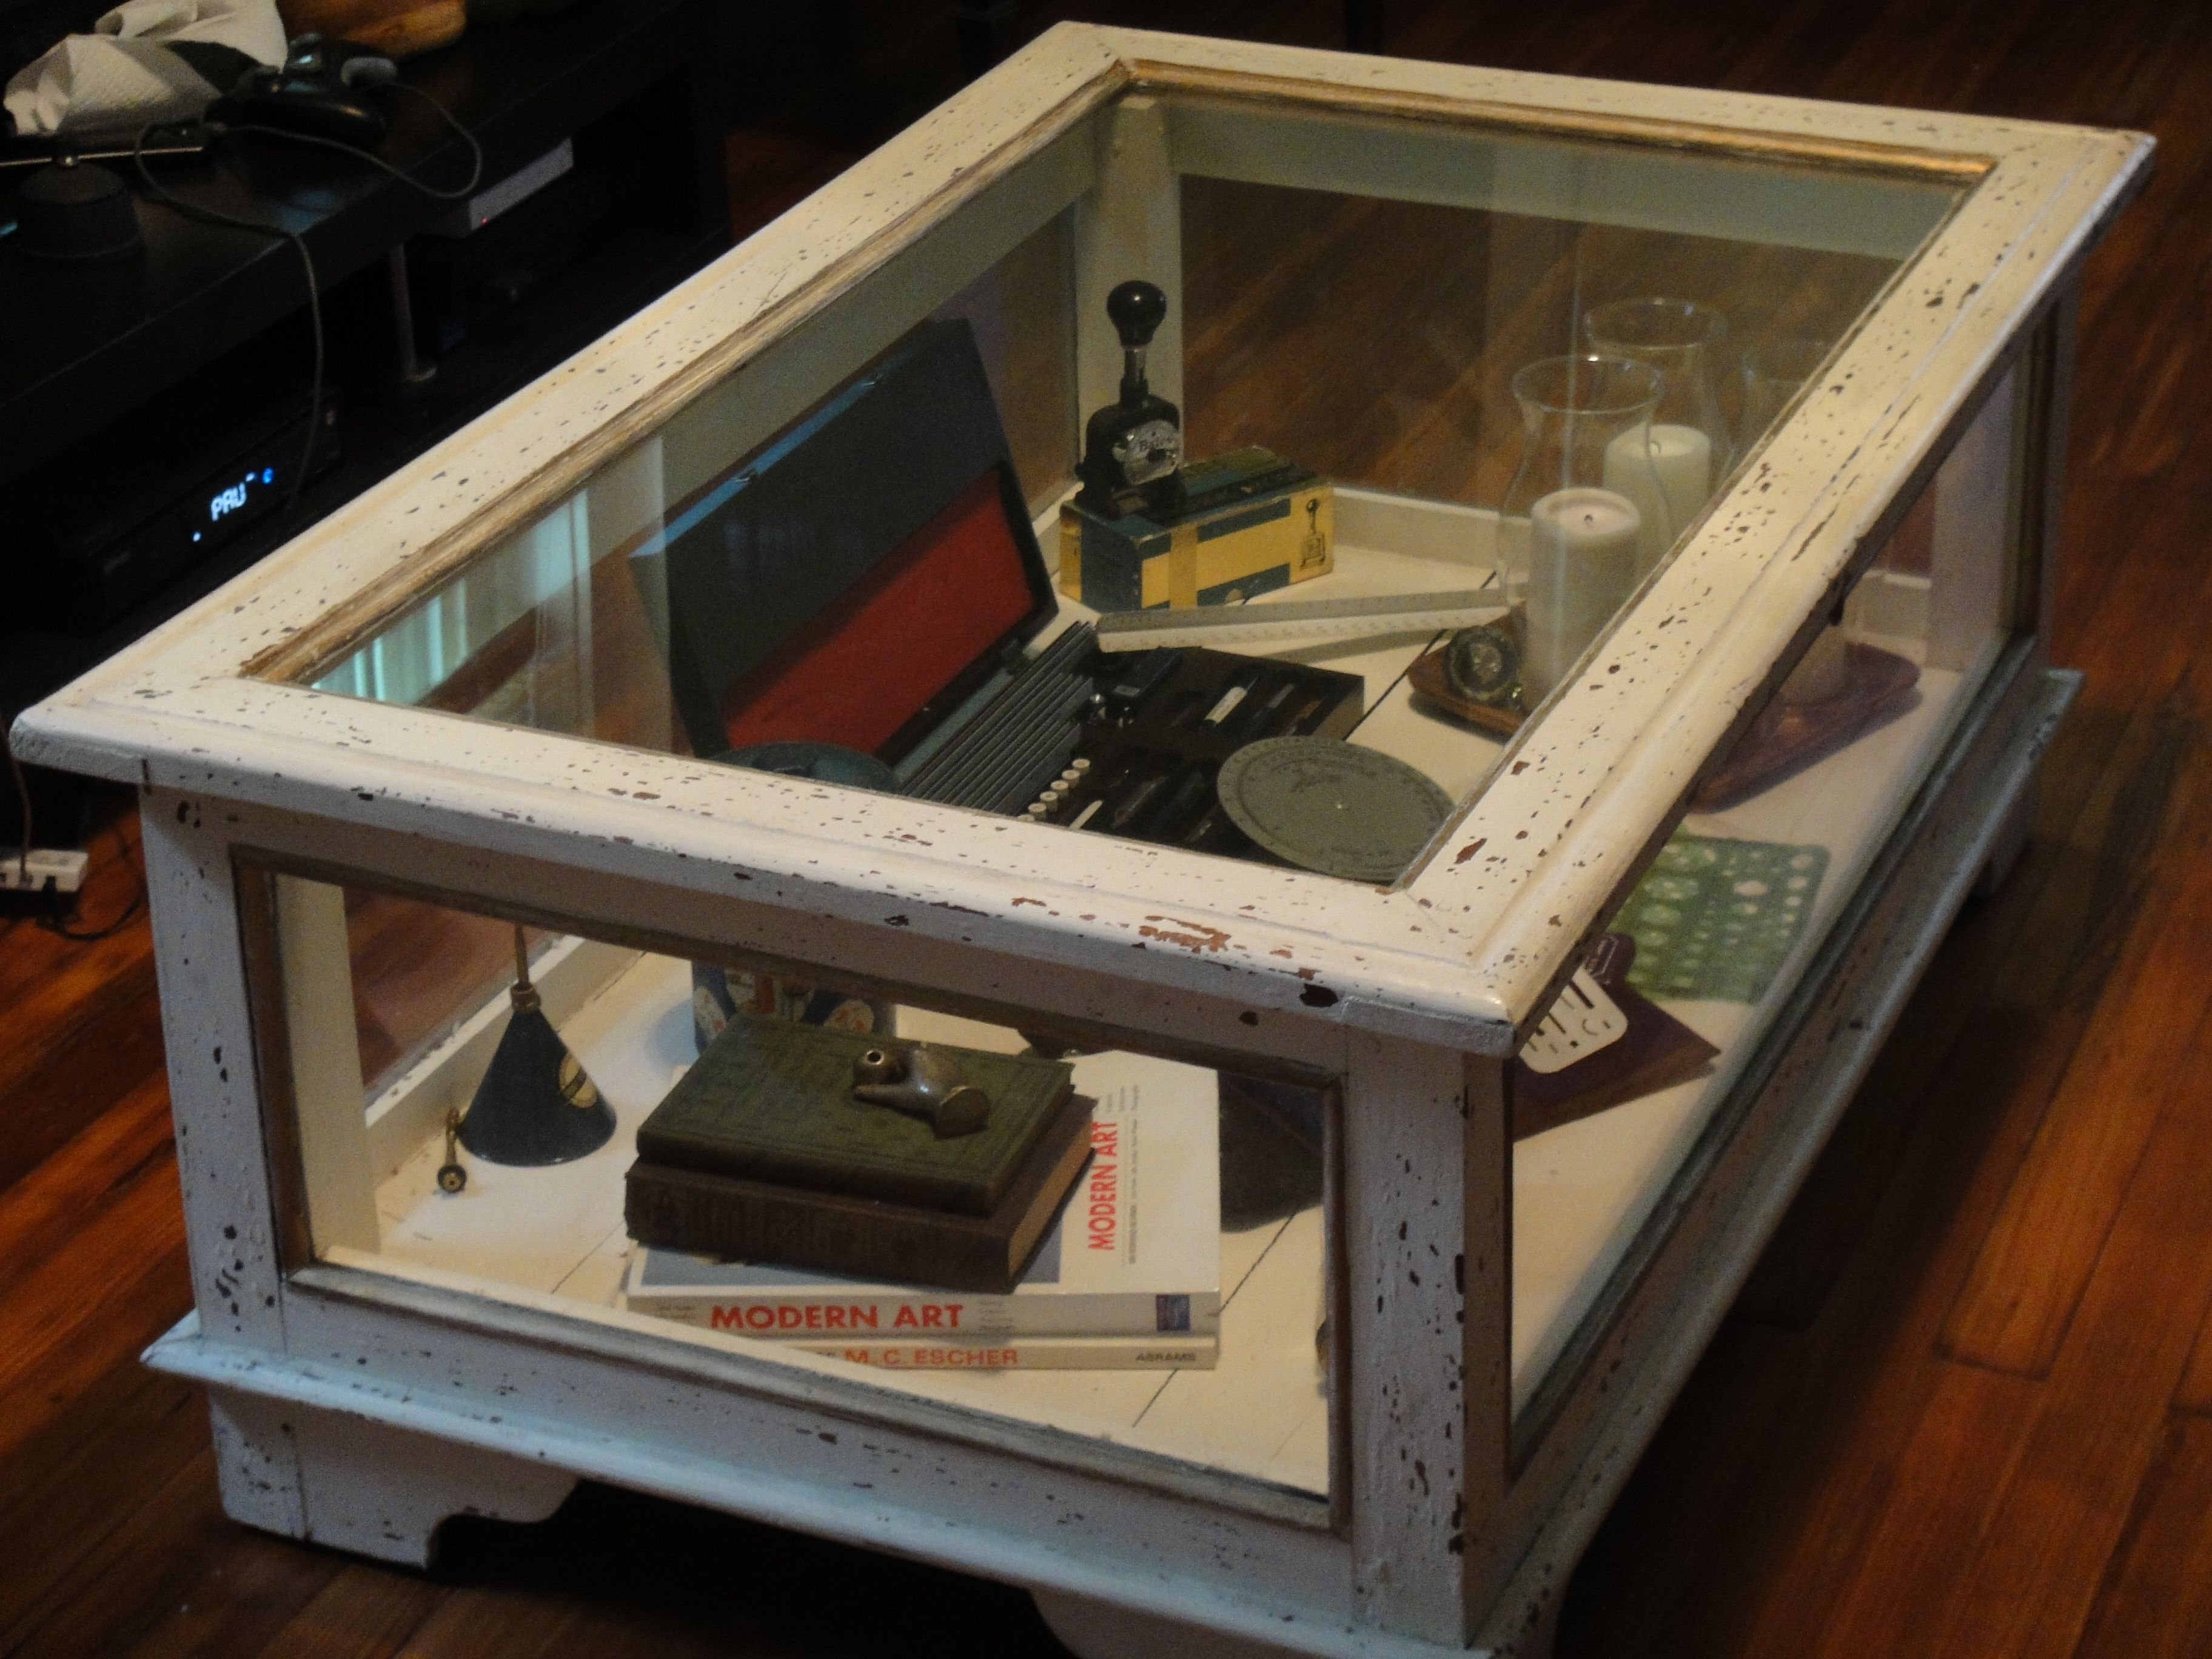 Living Room Chest Coffee Table Livingroomtable Coffetable Display Coffee Table Coffee Table Display Case Shadow Box Coffee Table [ 2736 x 3648 Pixel ]